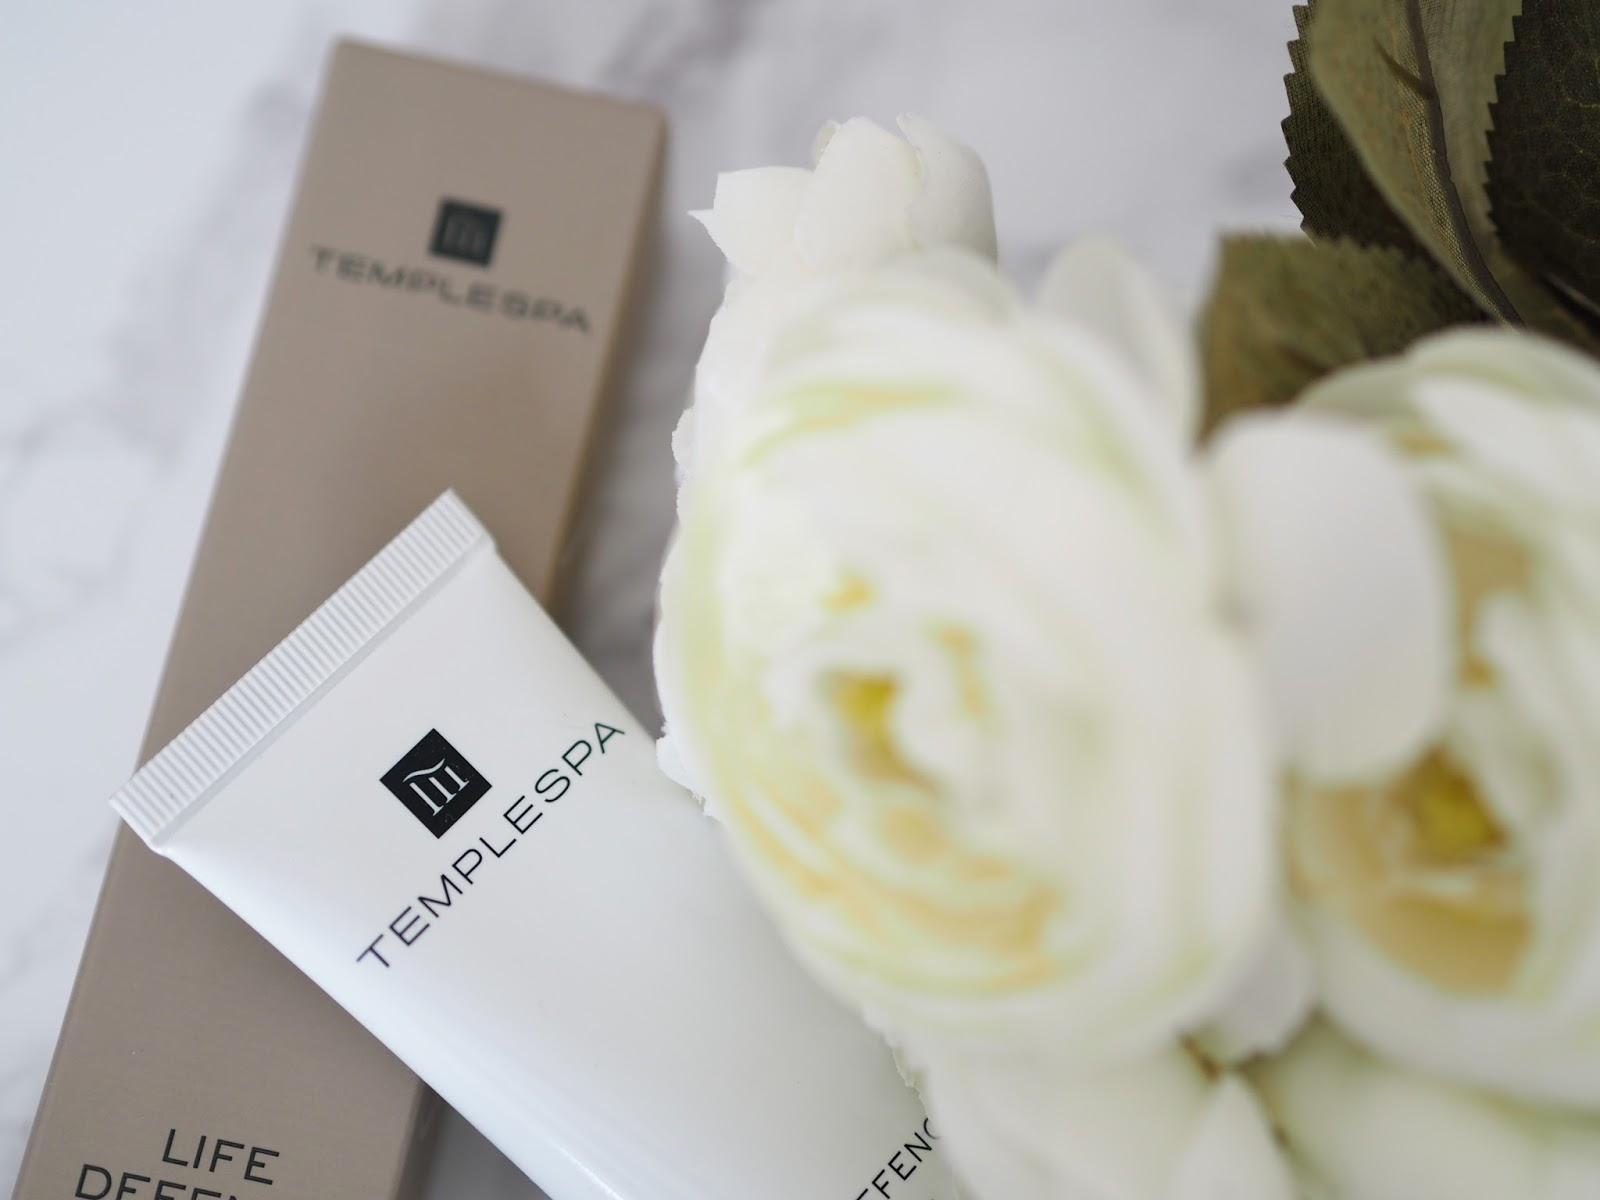 Life Defence \ review \ Templespa \ skincare \ beauty \ SPF \ Priceless Life of Mine \ over 40 lifestyle blog